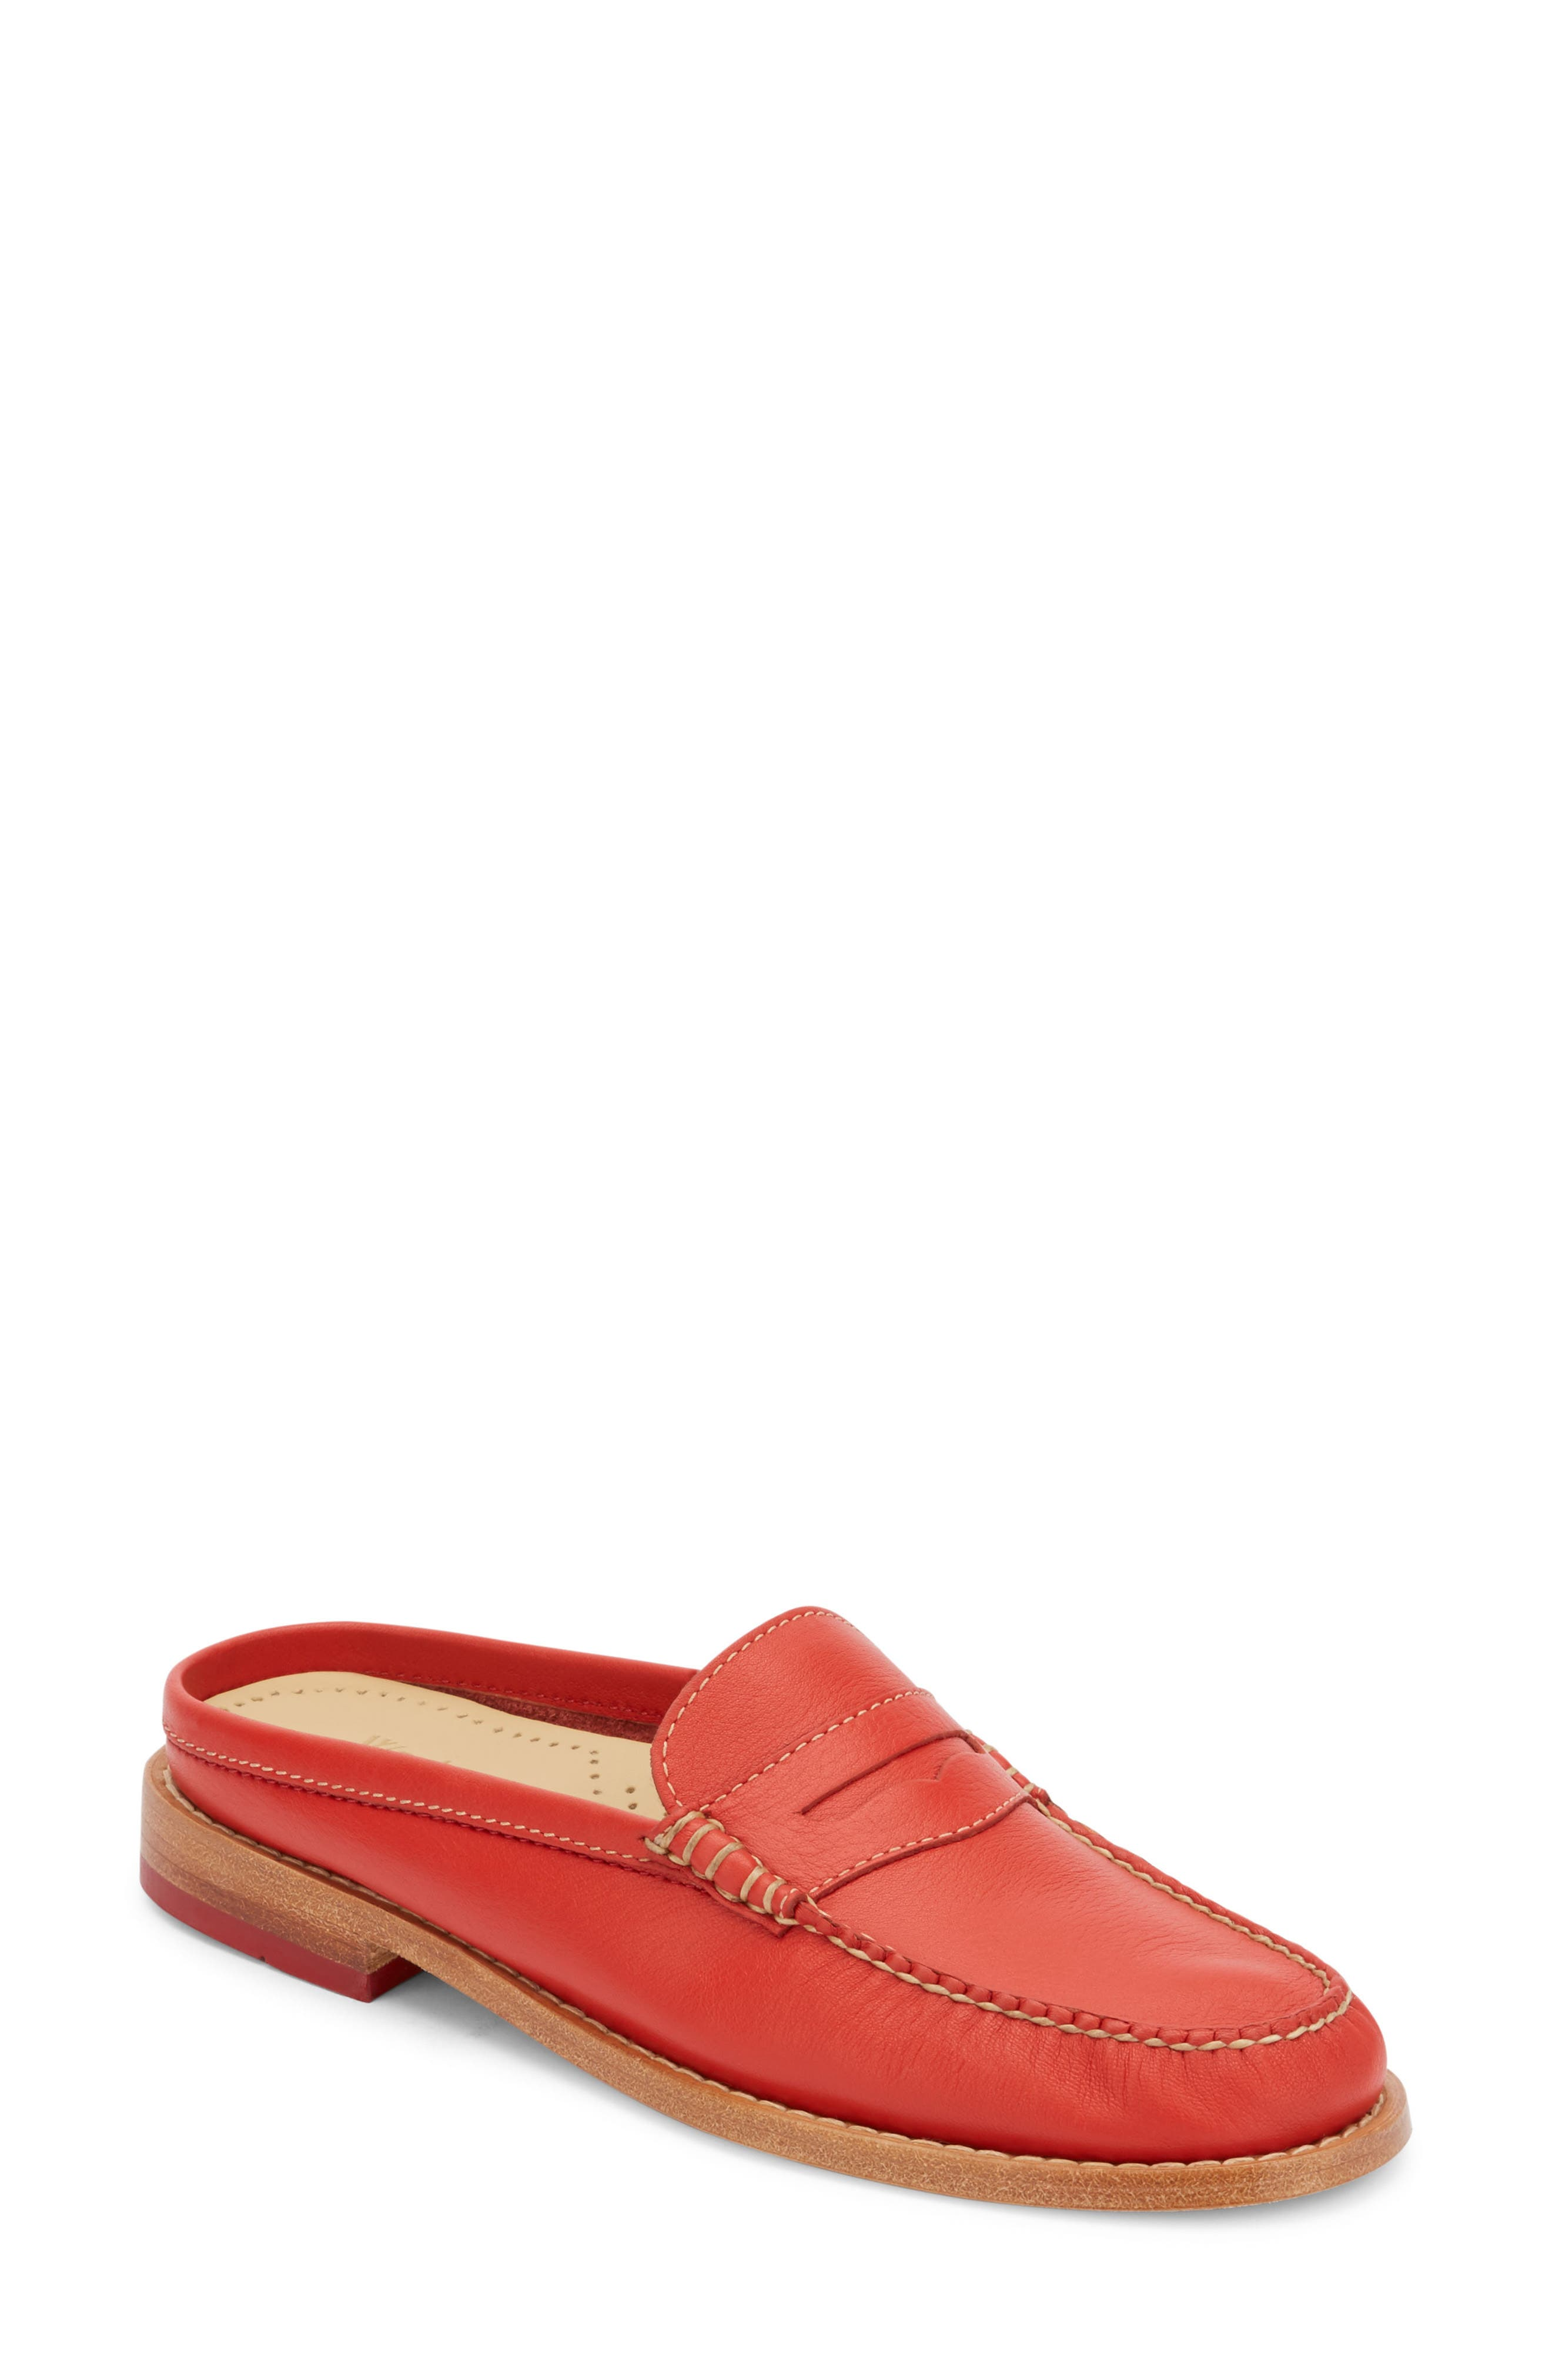 Wynn Loafer Mule,                         Main,                         color, Roma Red Leather